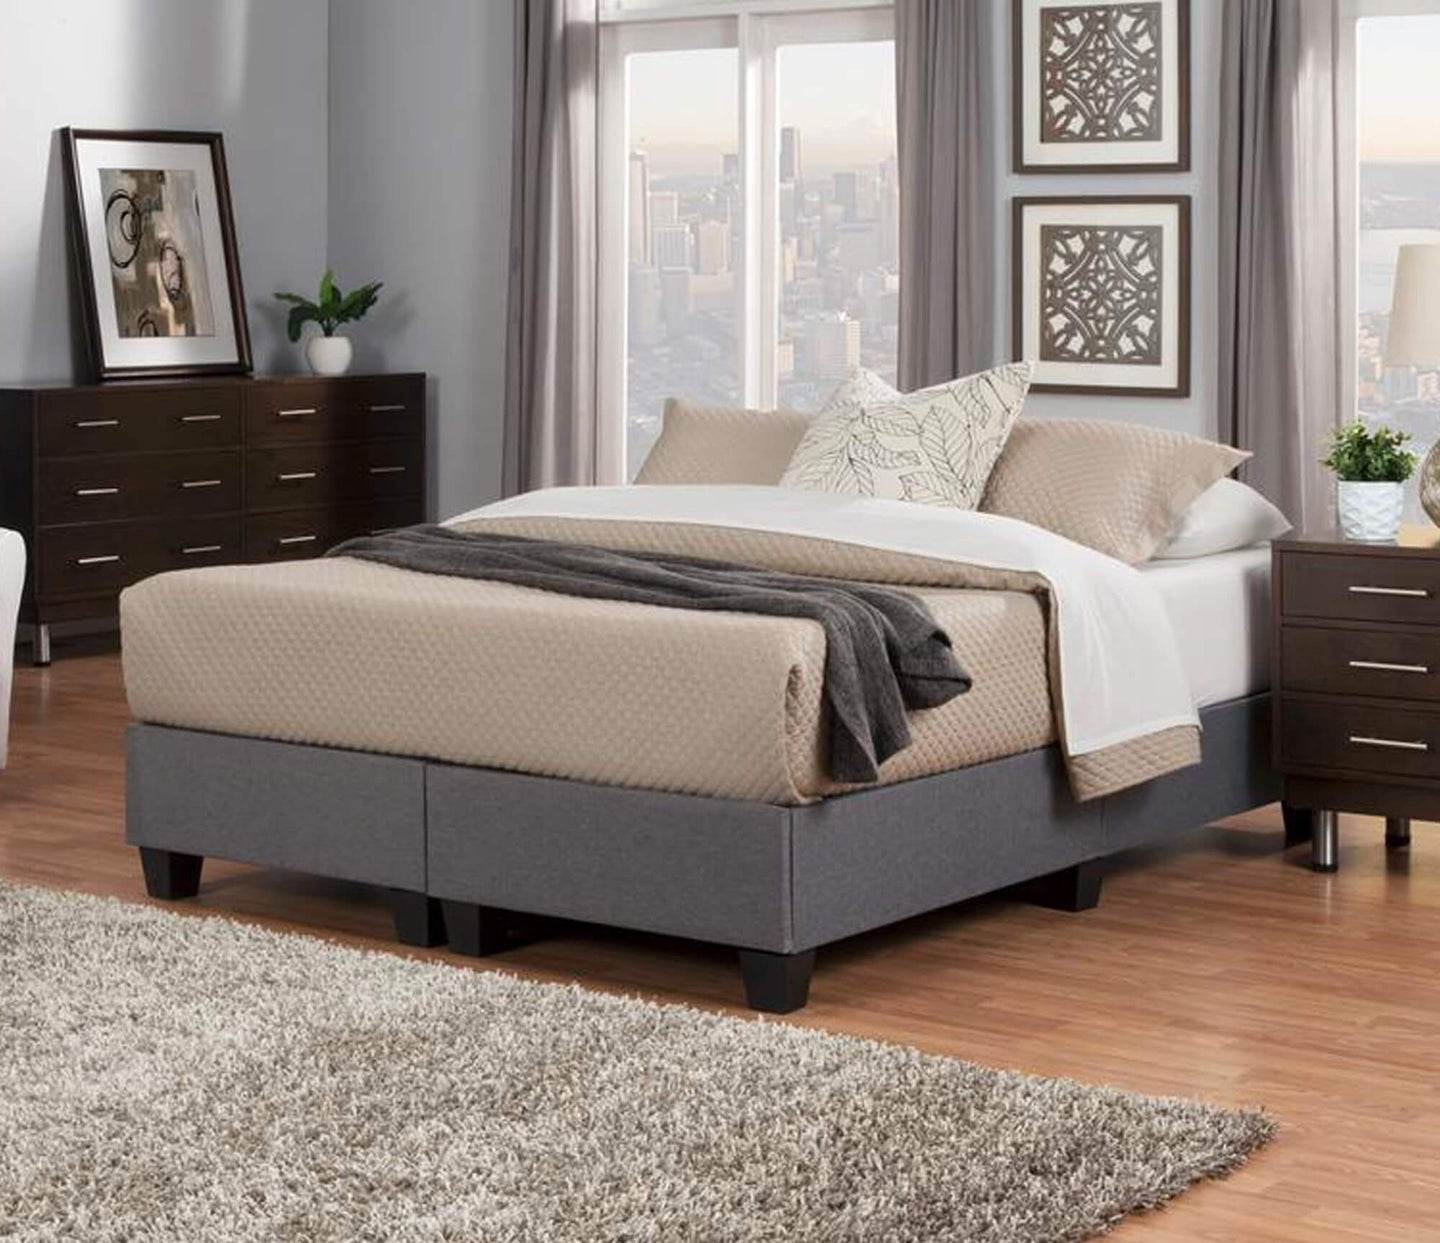 Dr. K Chiro-Core Comfort Dual Core Mattress + Upholstered Foundation